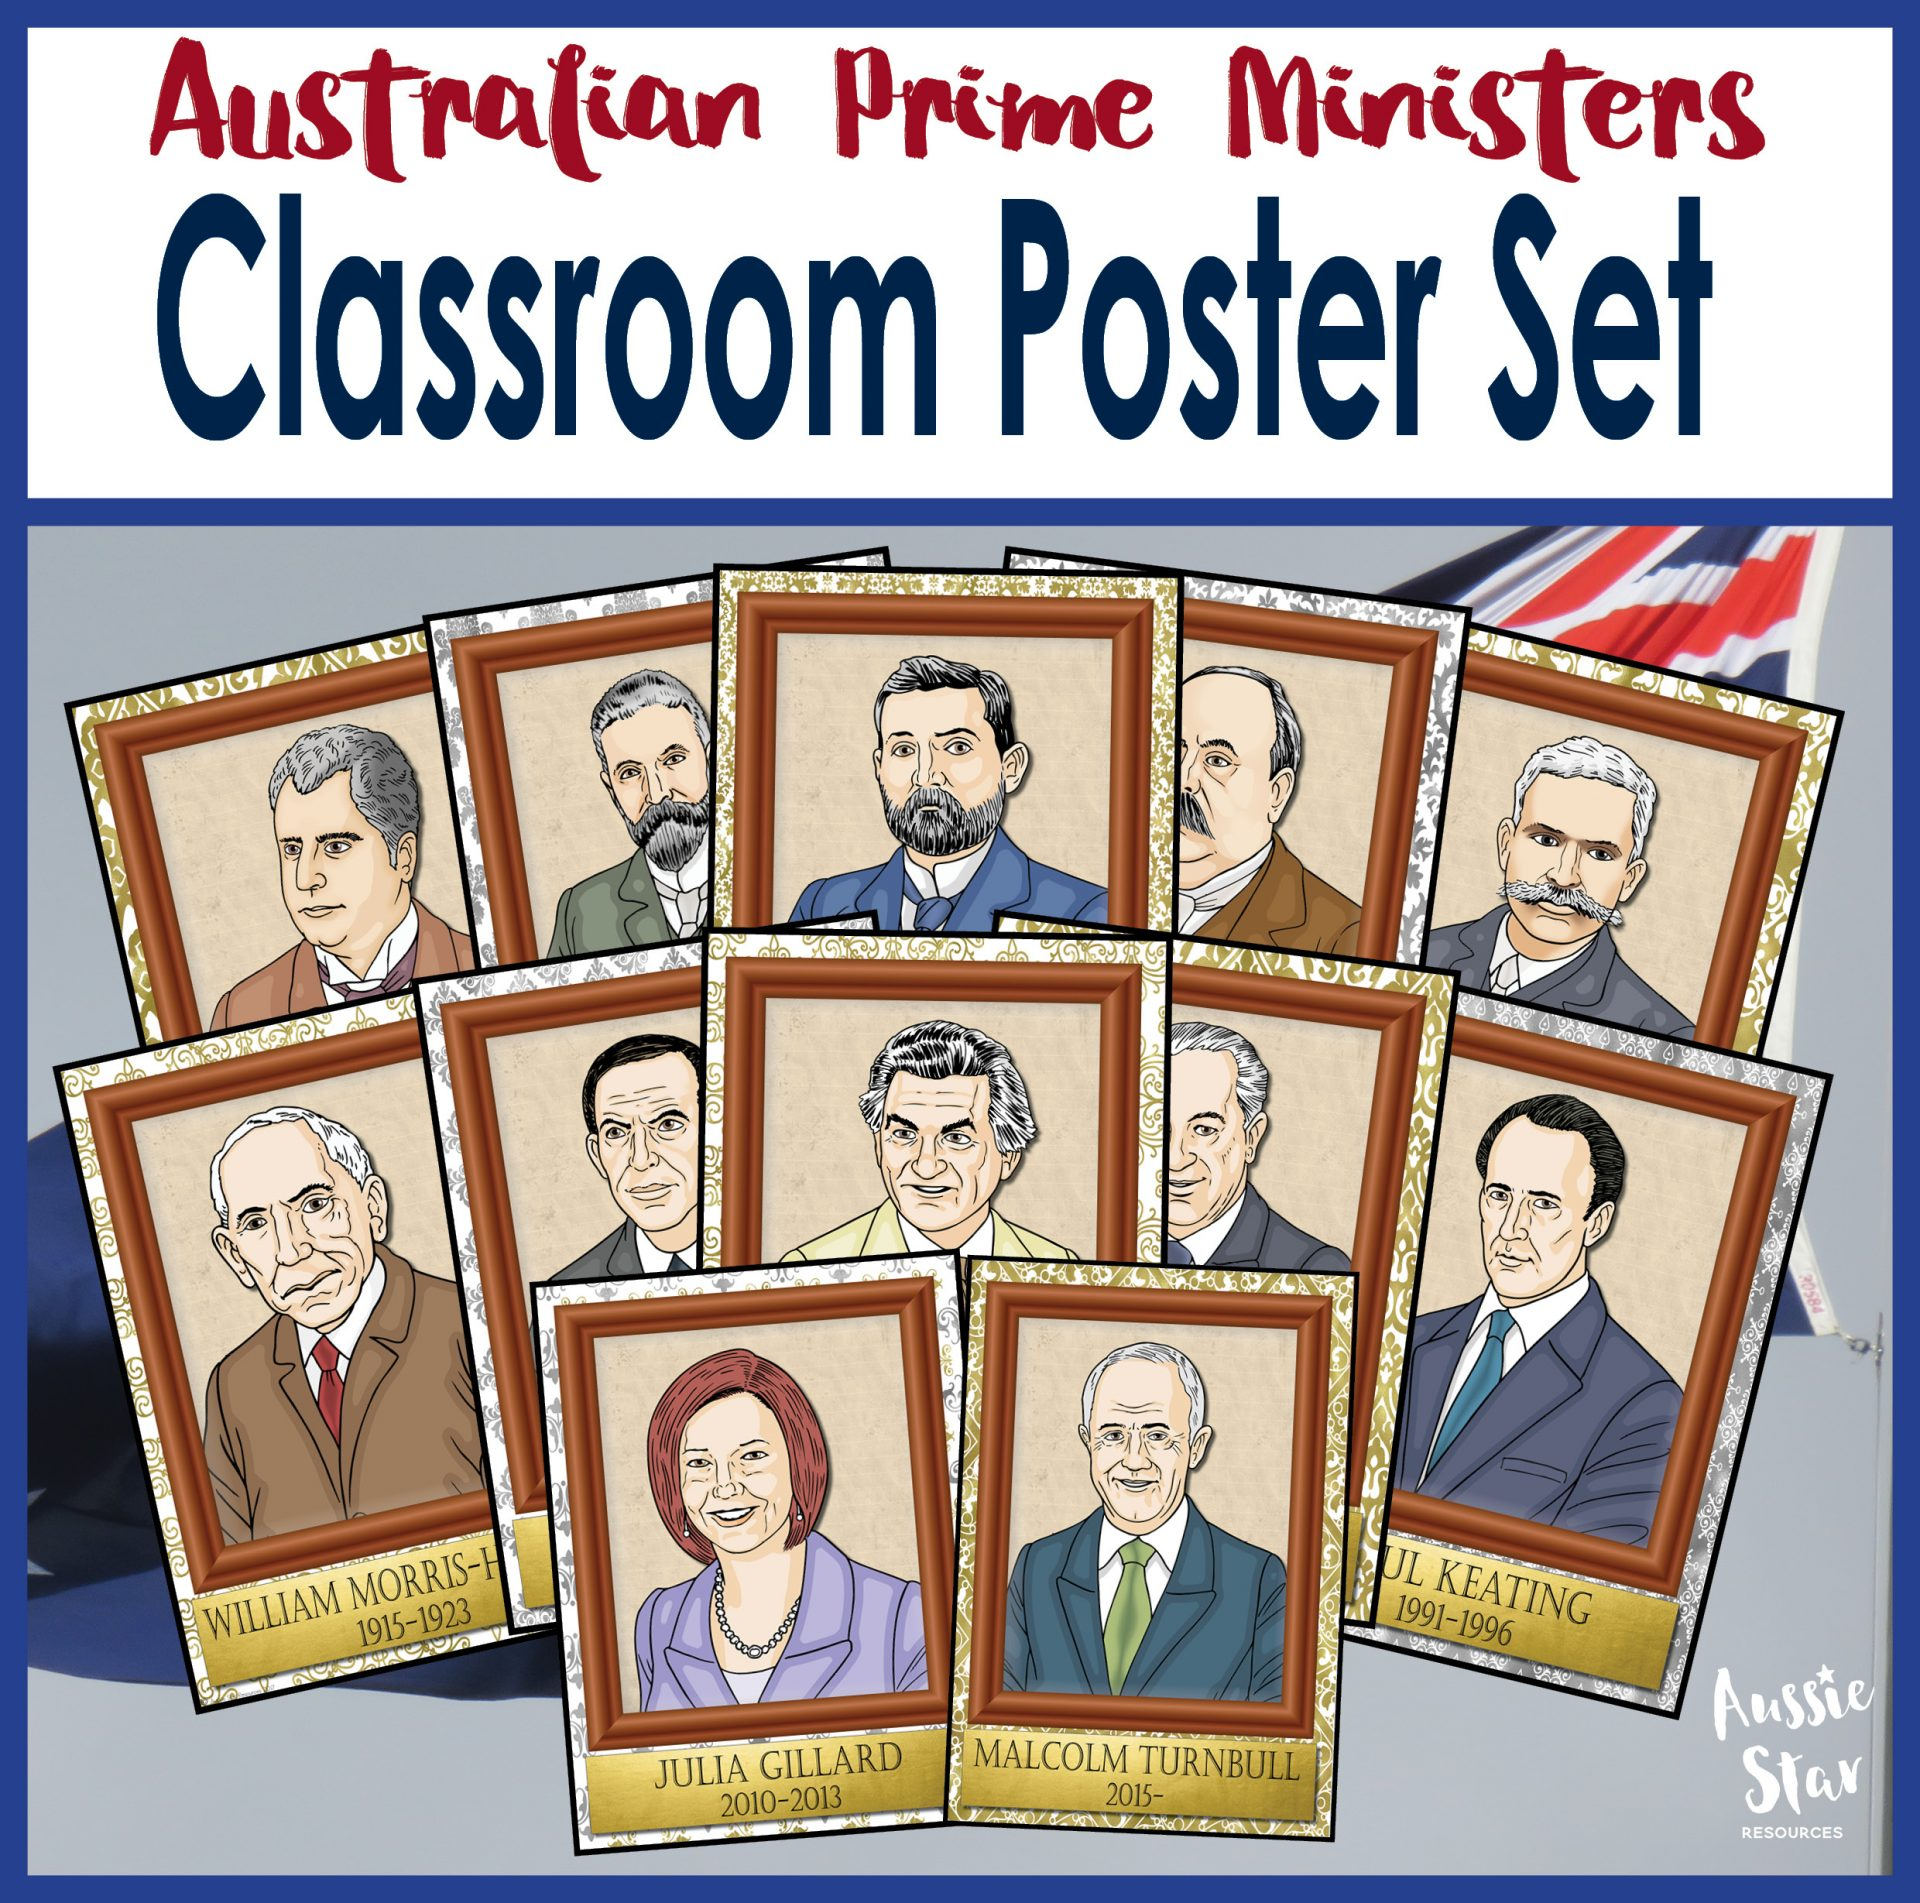 Australian Prime Ministers Classroom Display Poster Set Aussie Star Resources